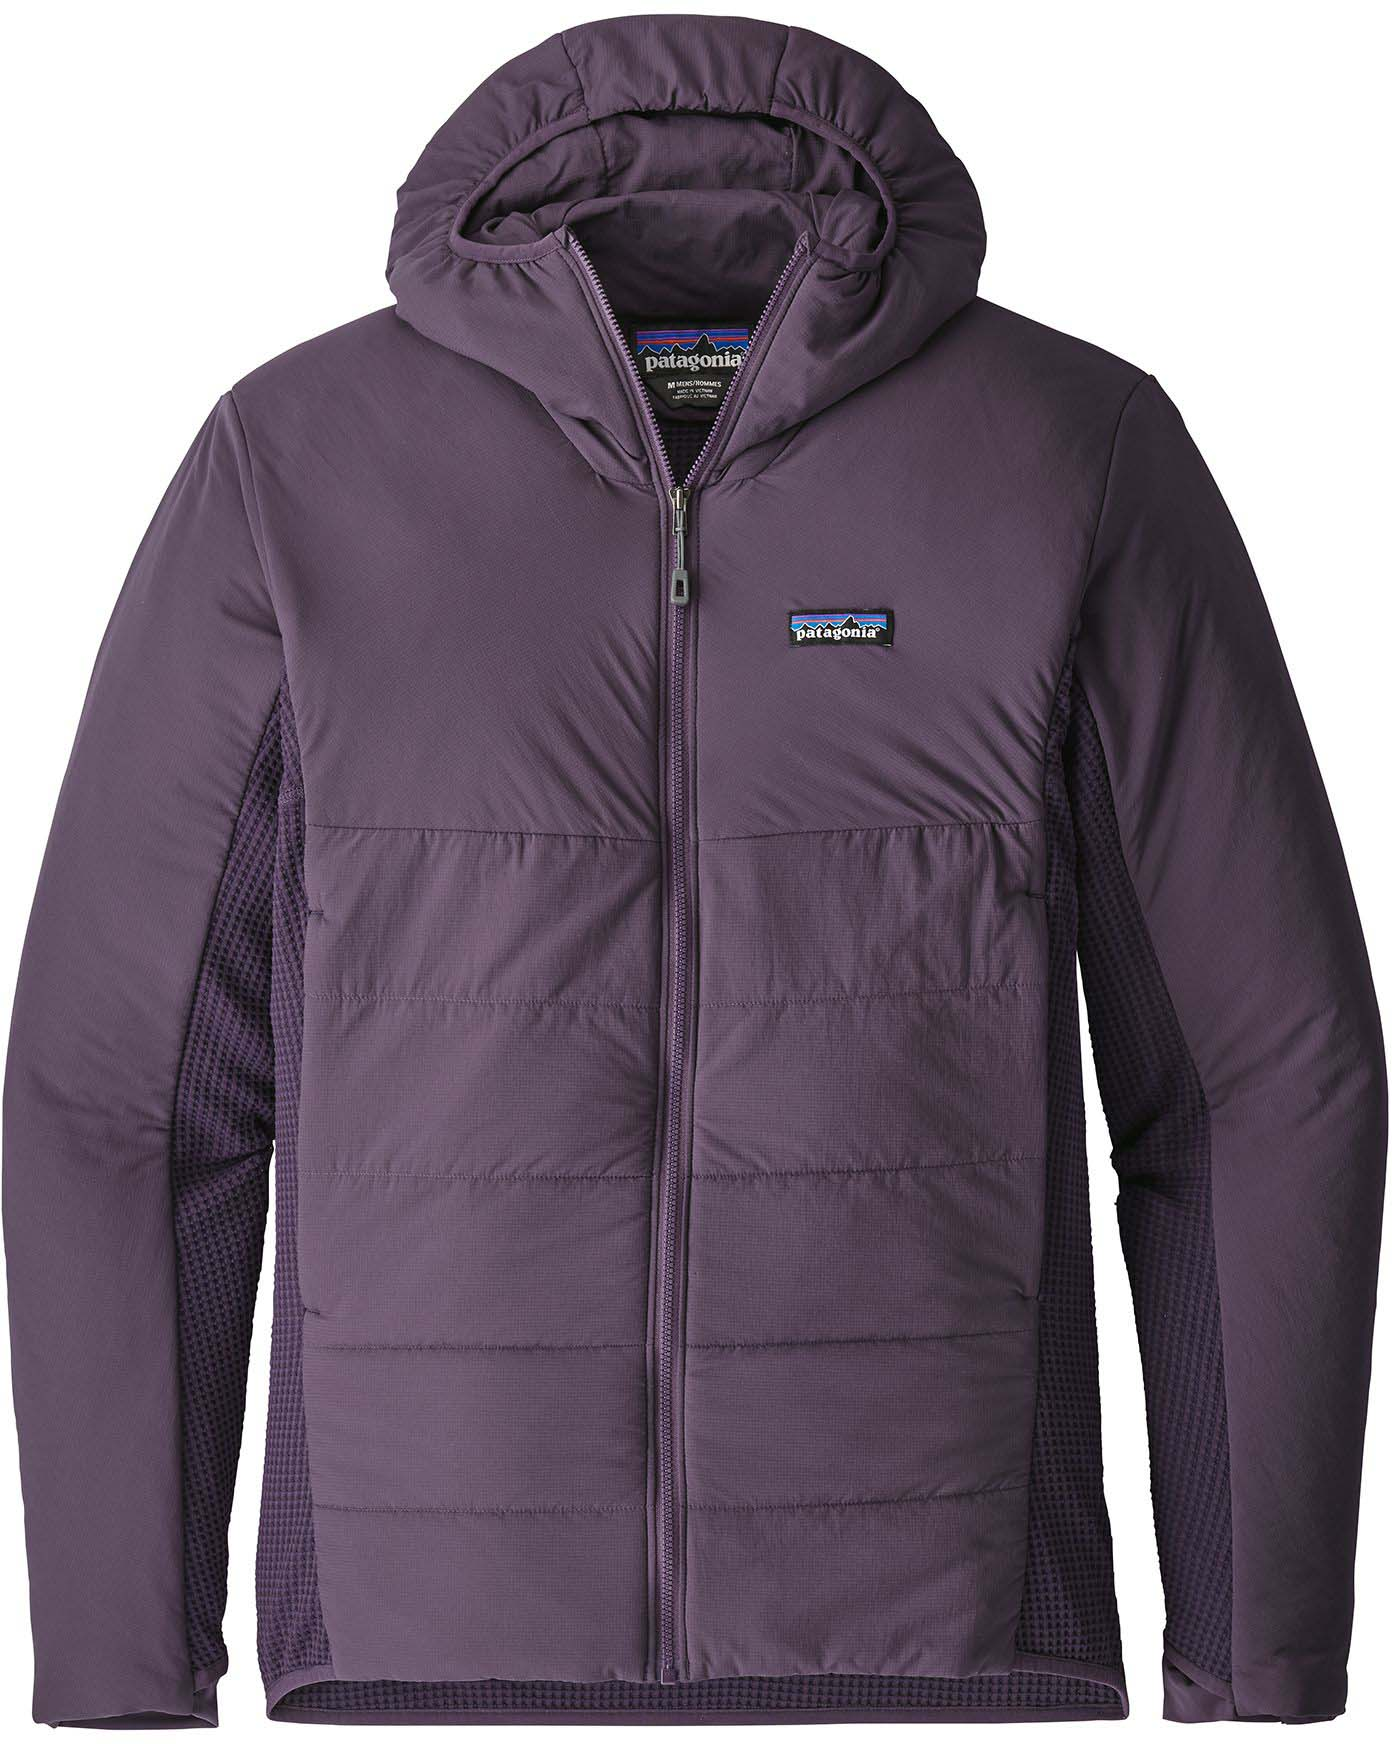 image patagonia-nano-air-light-hybrid-hoody-purple-jpg